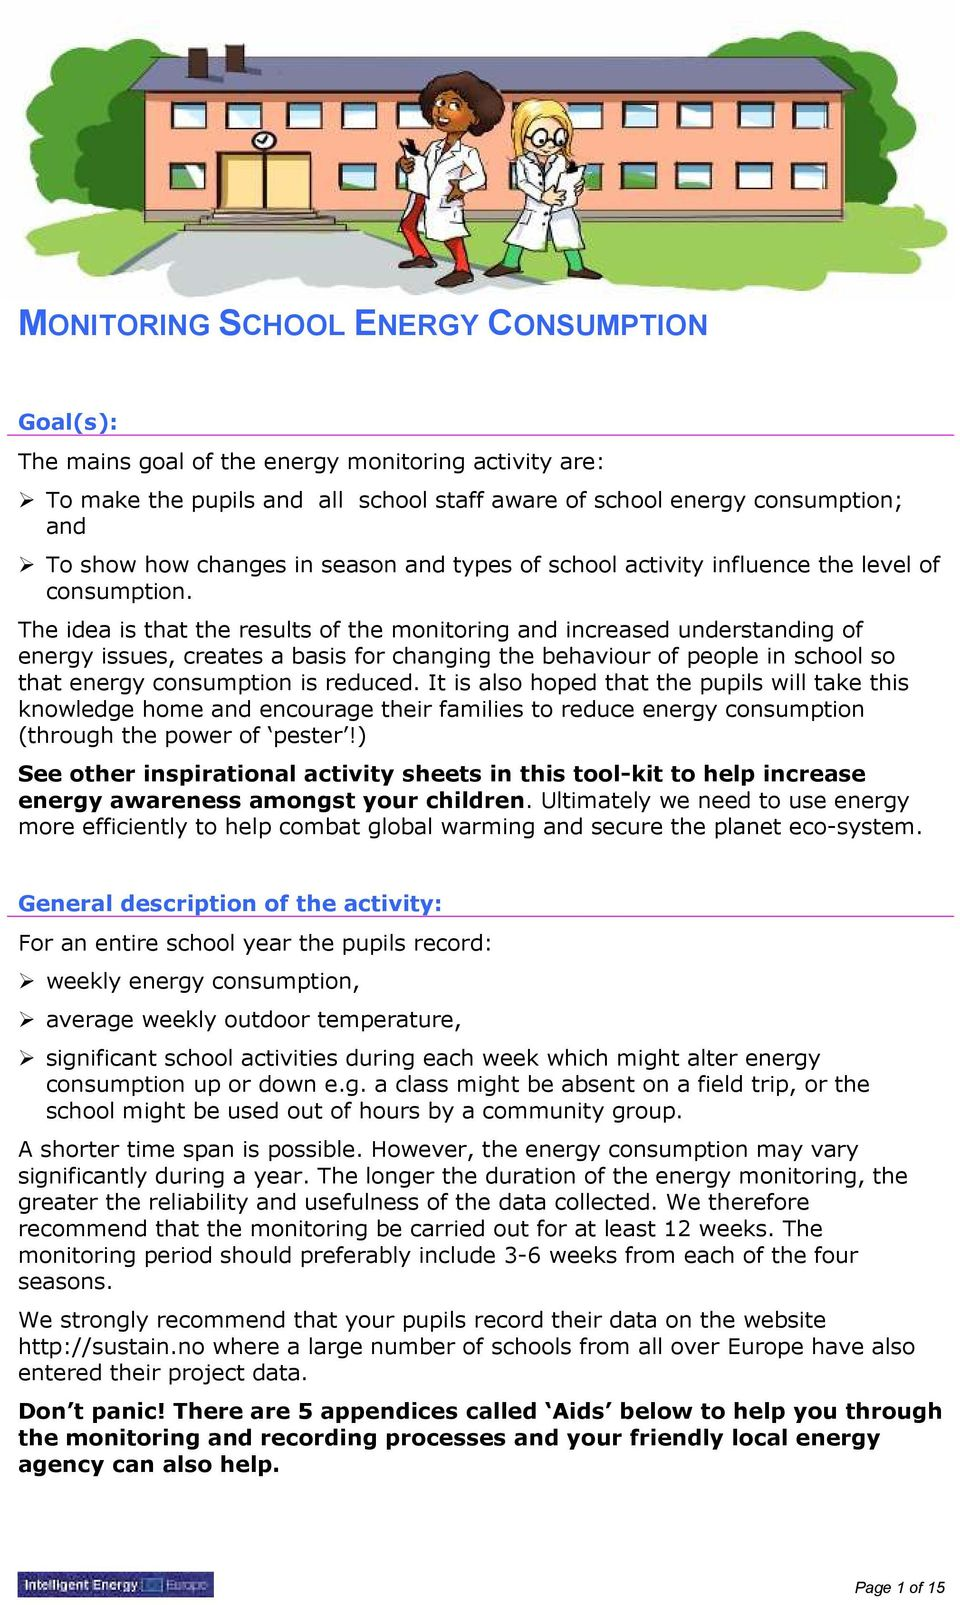 The idea is that the results of the monitoring and increased understanding of energy issues, creates a basis for changing the behaviour of people in school so that energy consumption is reduced.